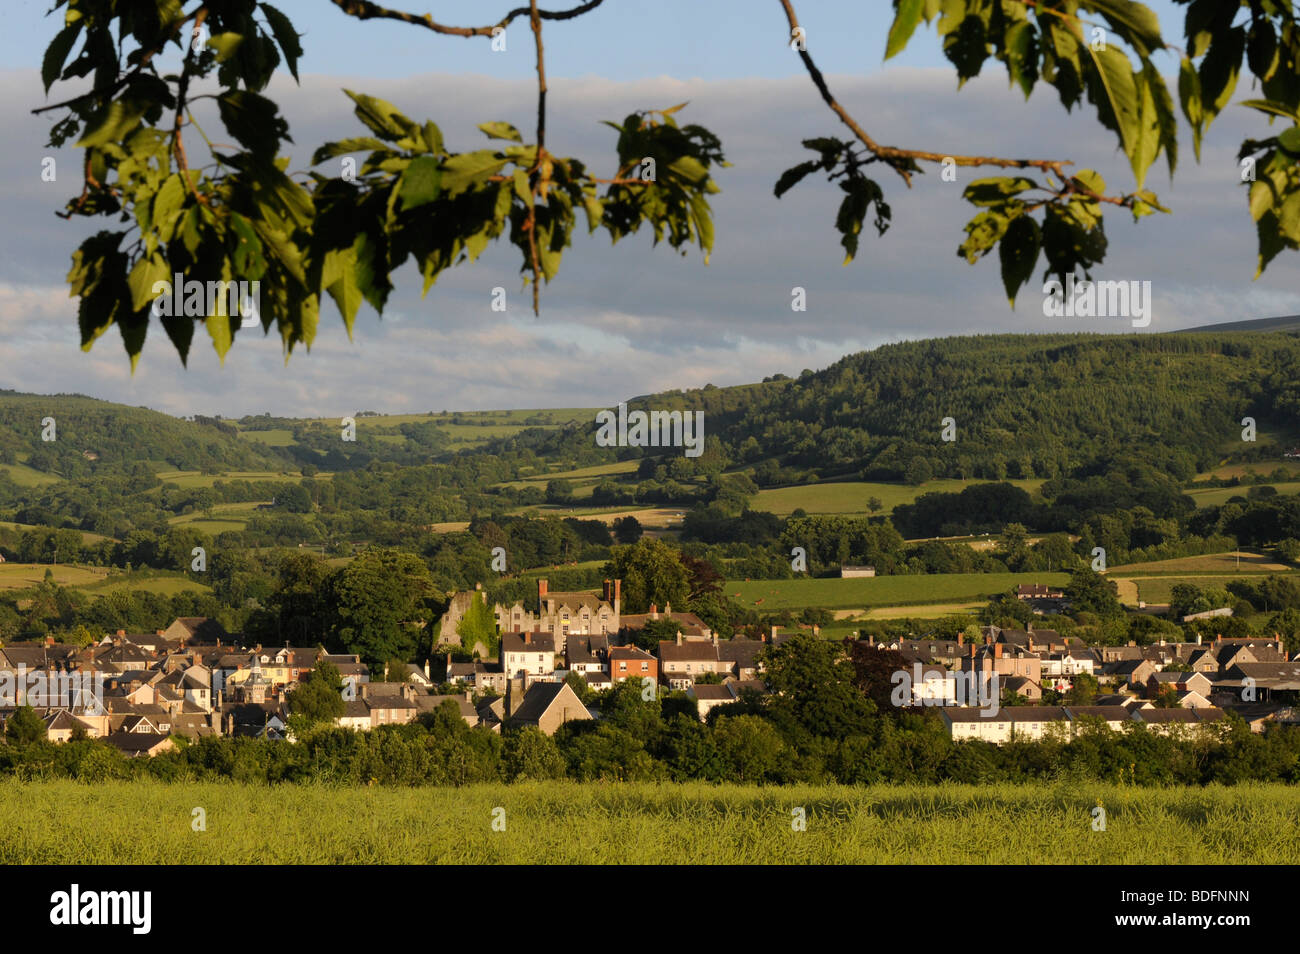 Hay on Wye. Summer time view. - Stock Image